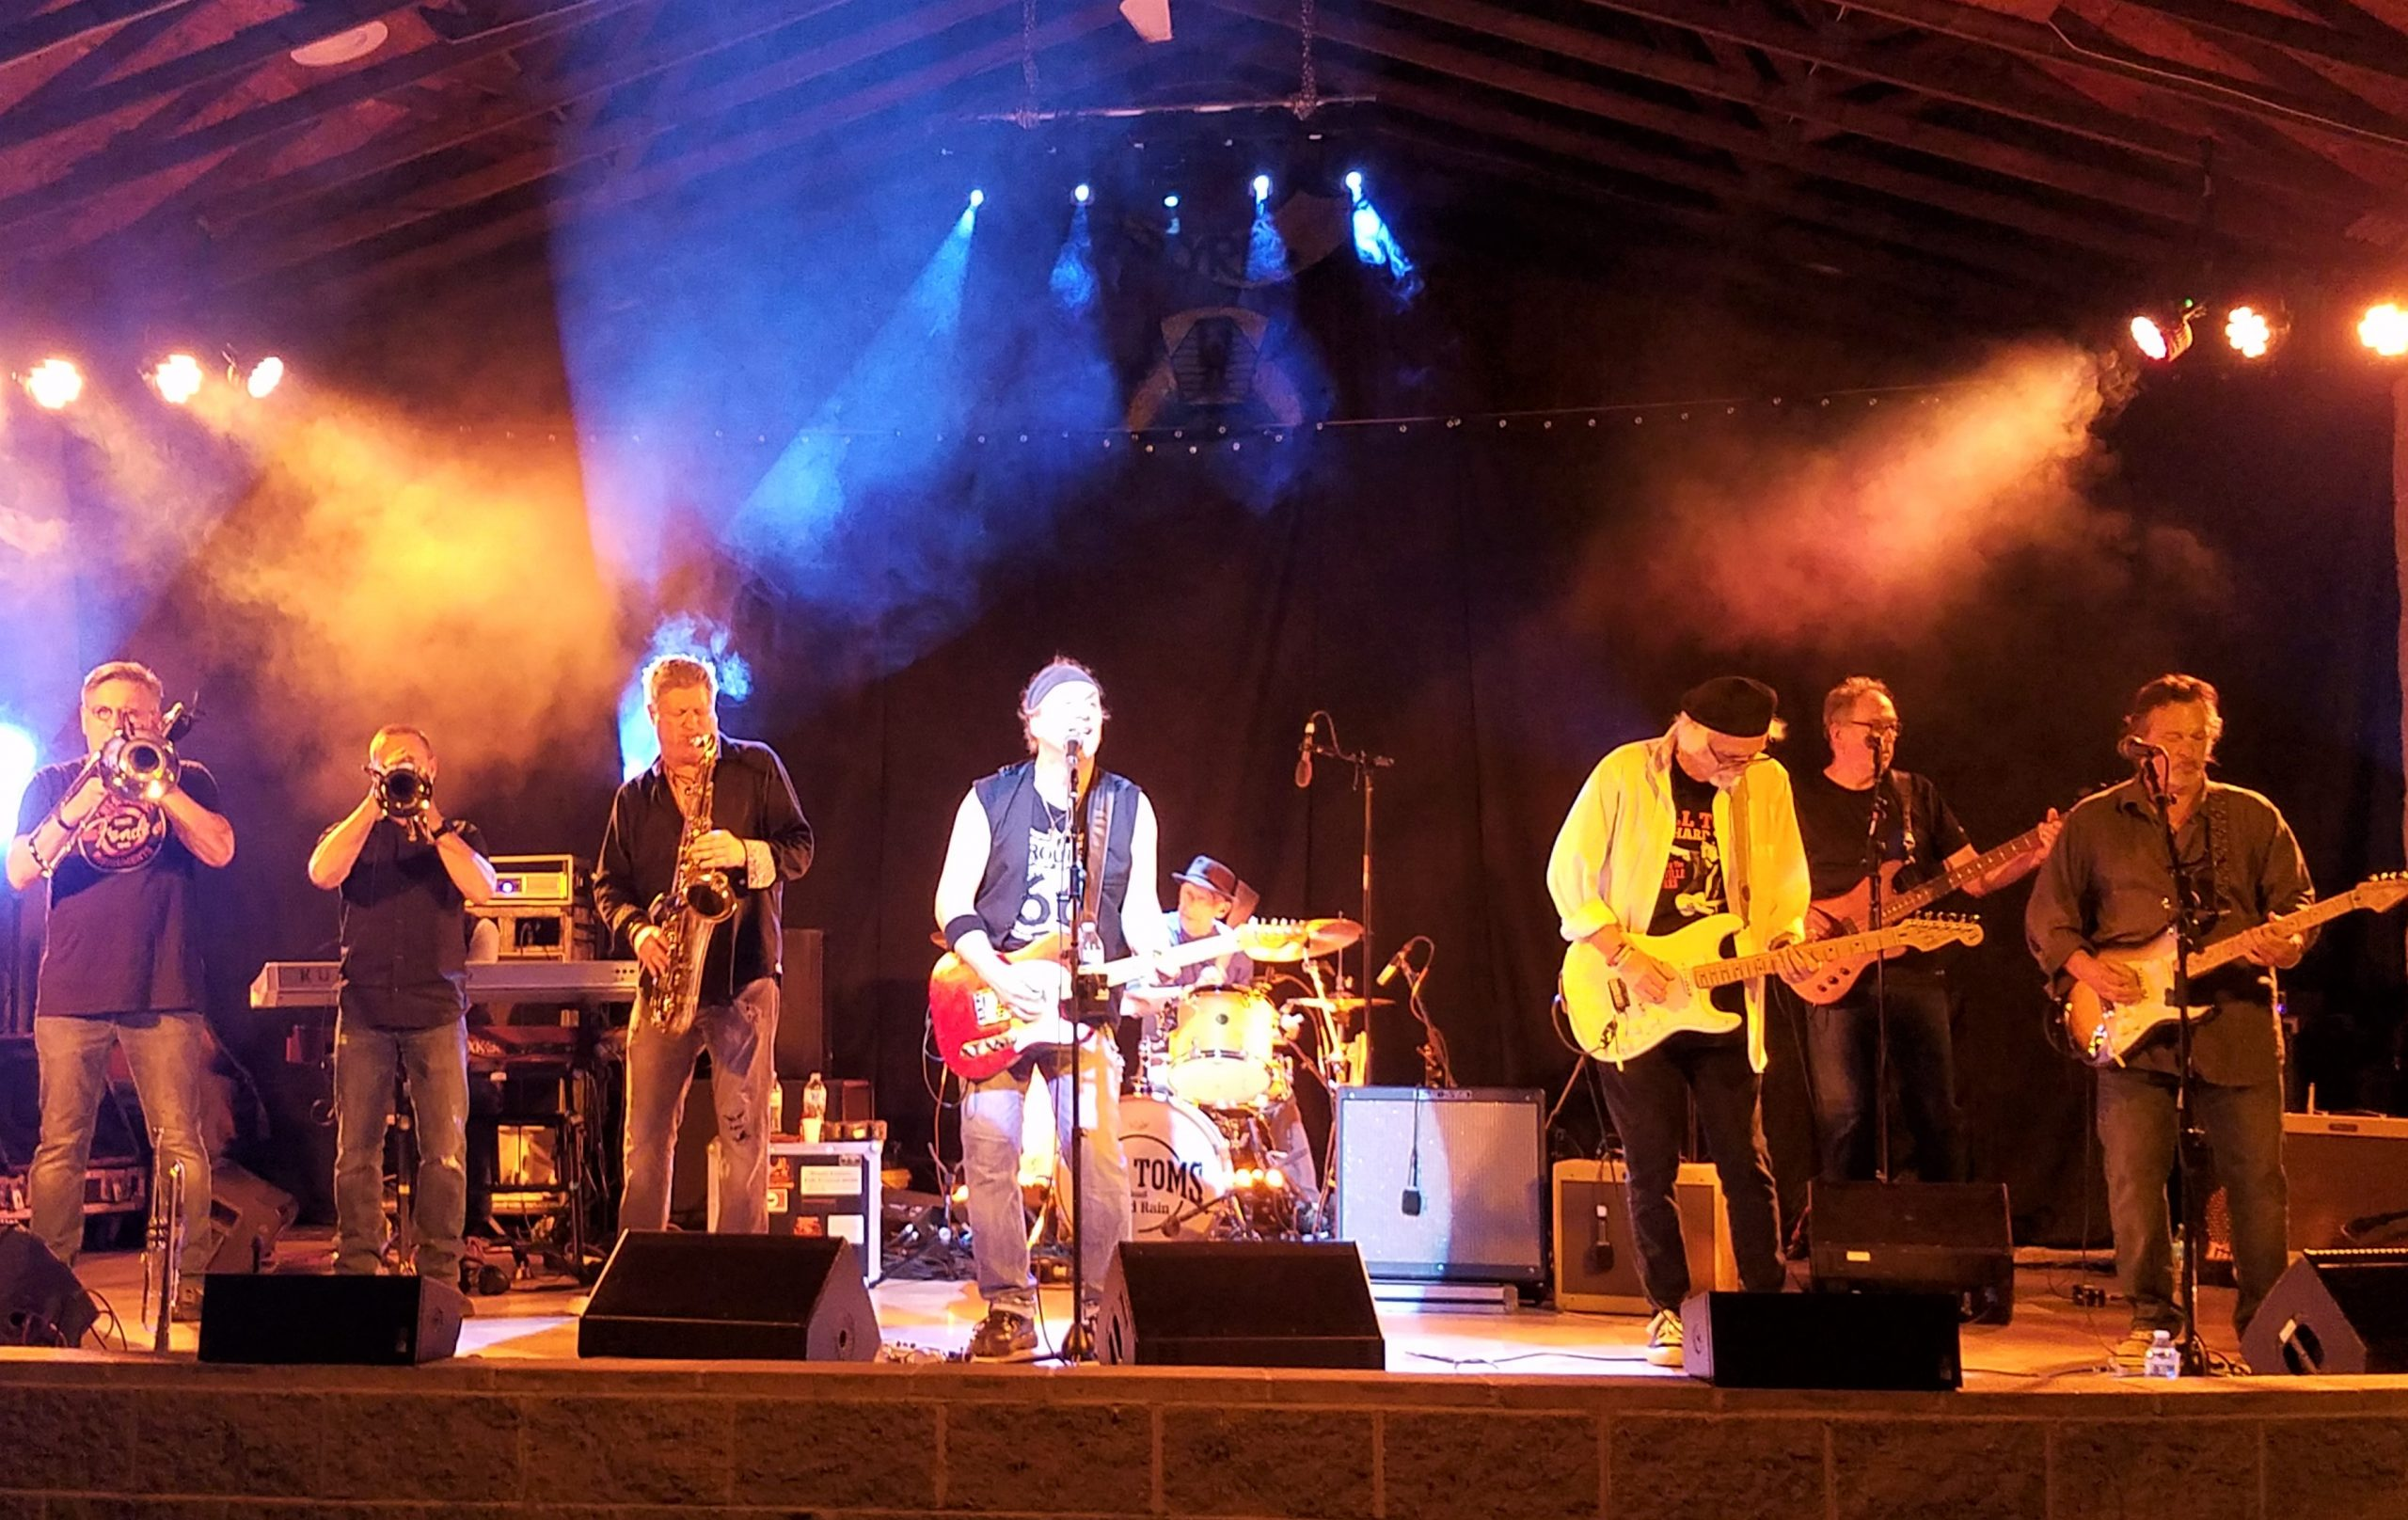 Bill Toms and Hard Rain with the Soulville Horns will be performing June 11 at the South Park Amphitheater for the Allegheny County Concert Summer Concert Series. (photo: Rick Handler)